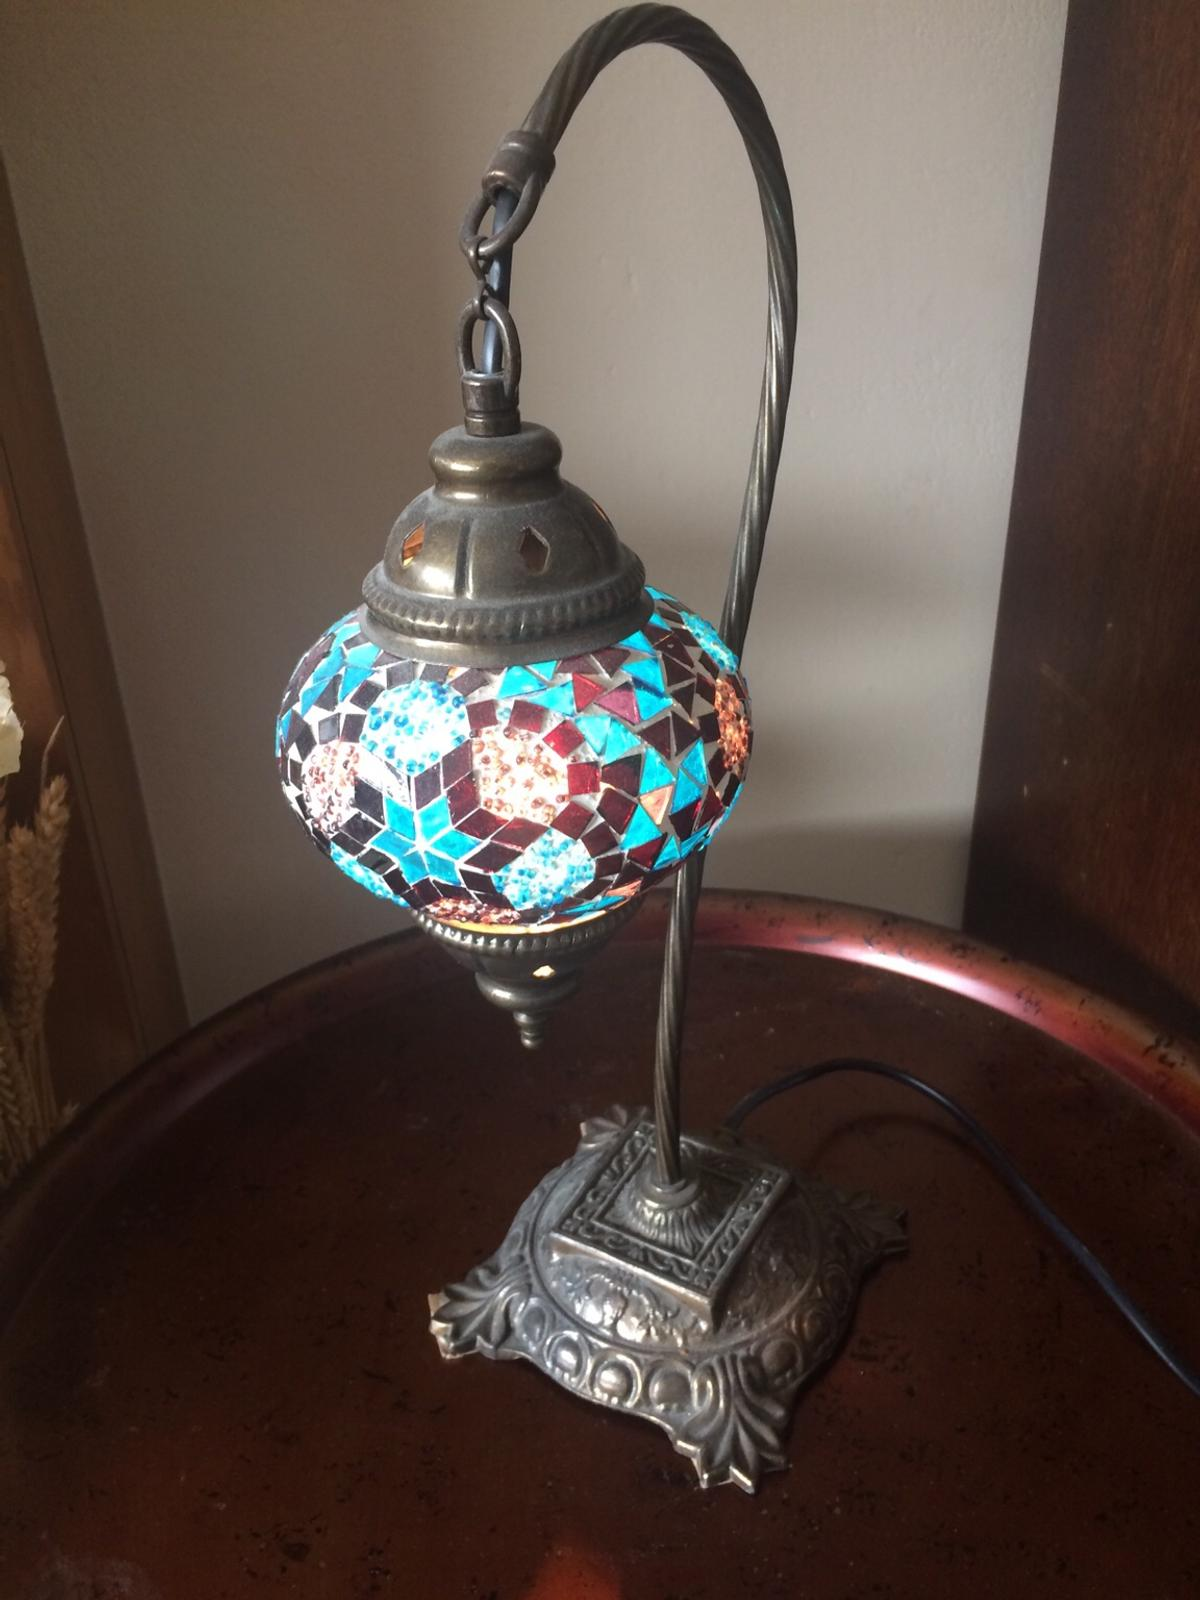 Moroccan Table Lamp Morrocan In Ng8 Nottingham For 35 00 For Sale Shpock